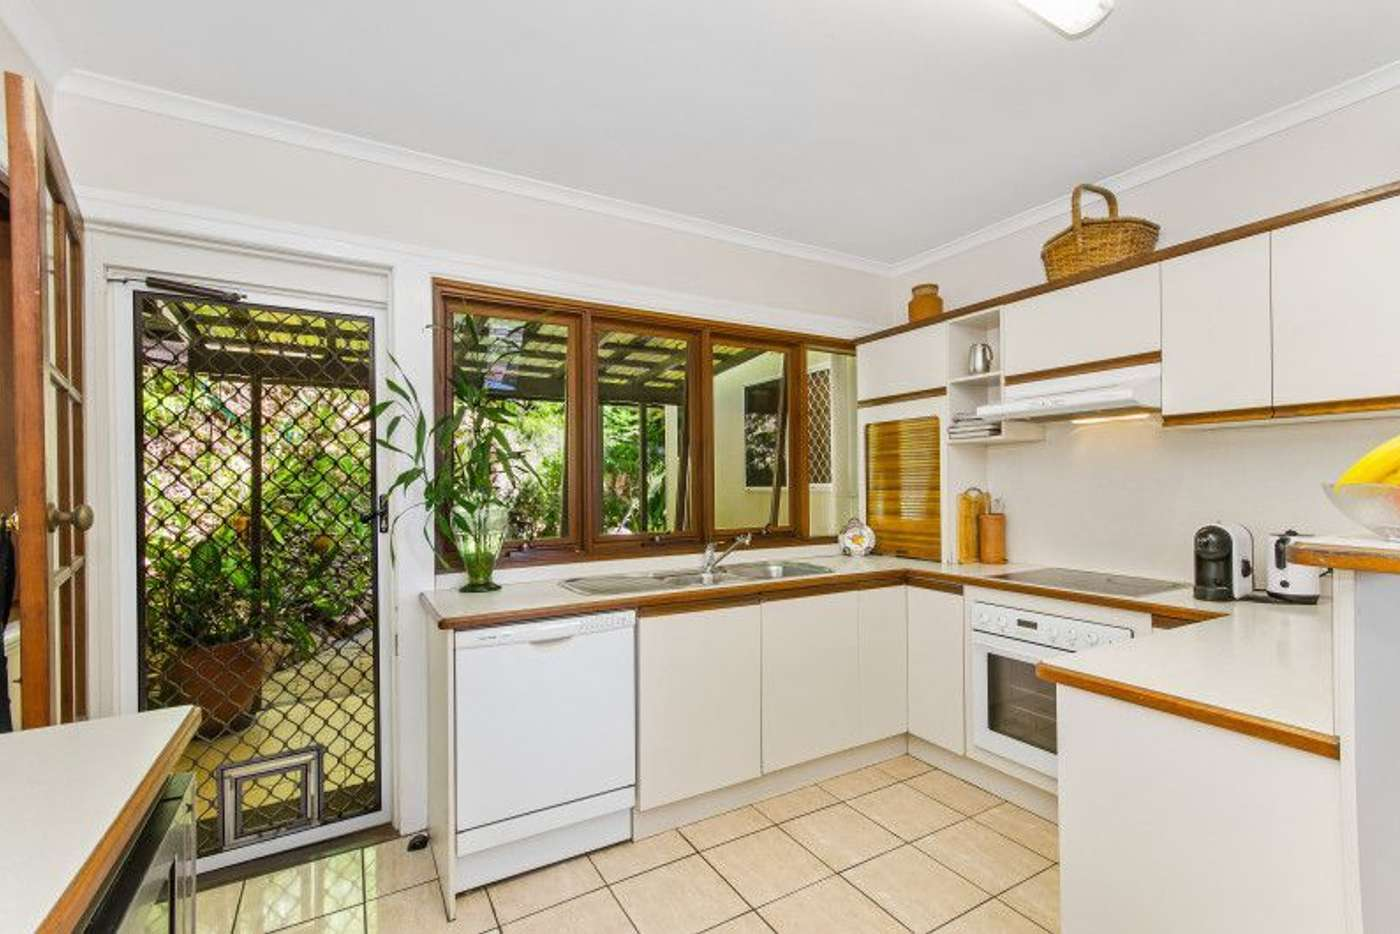 Sixth view of Homely house listing, 196 Denham Street, North Ward QLD 4810